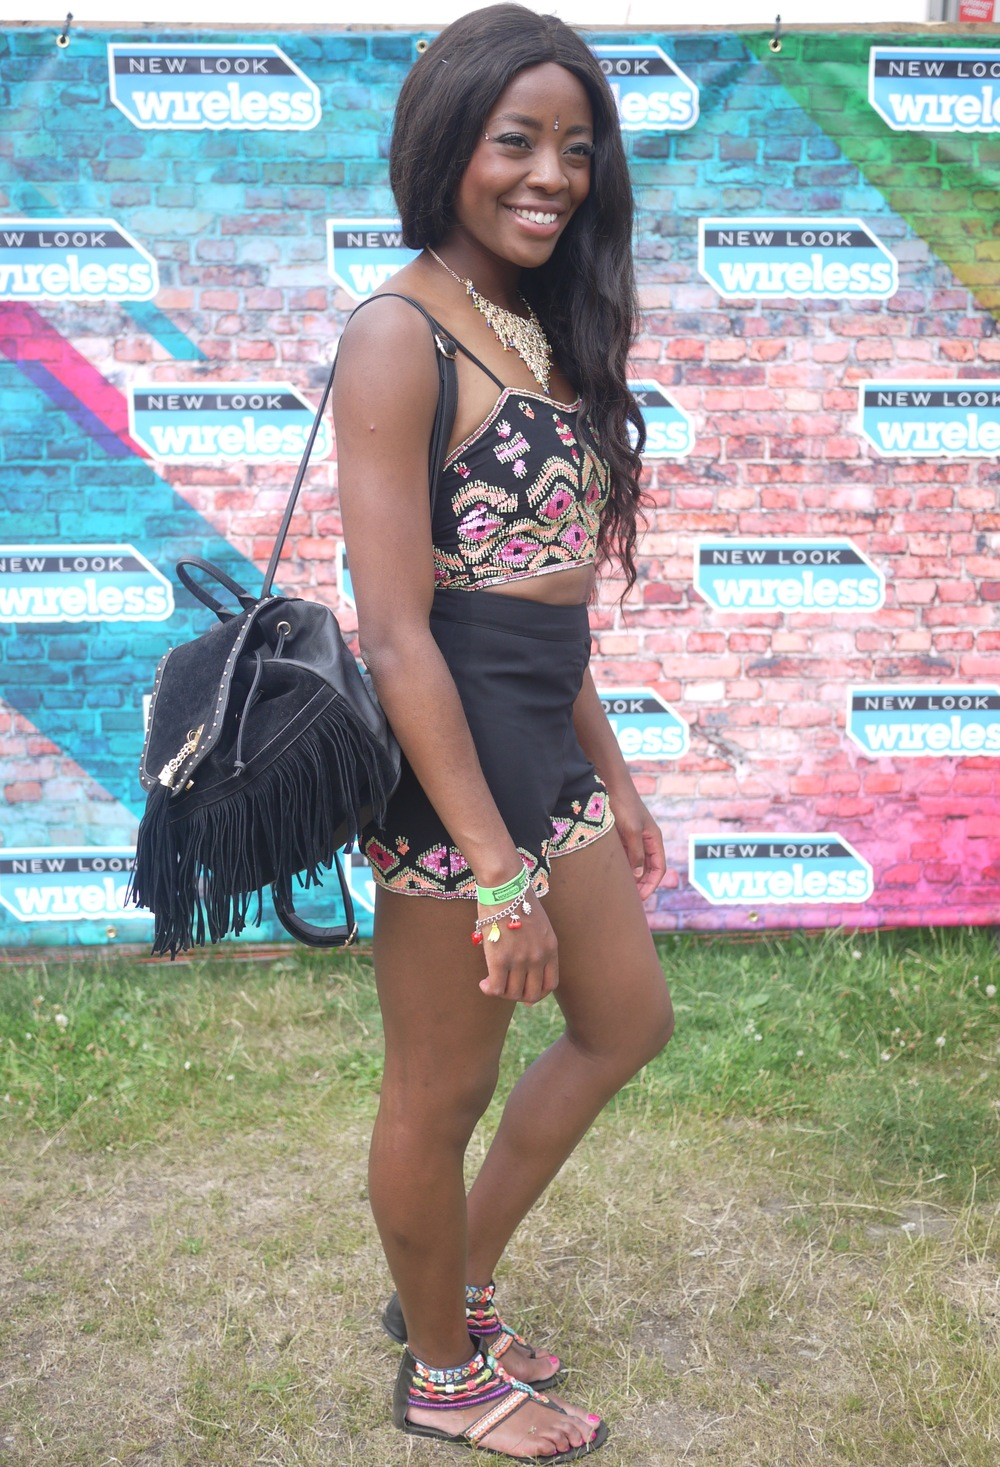 New Look Wireless Festival